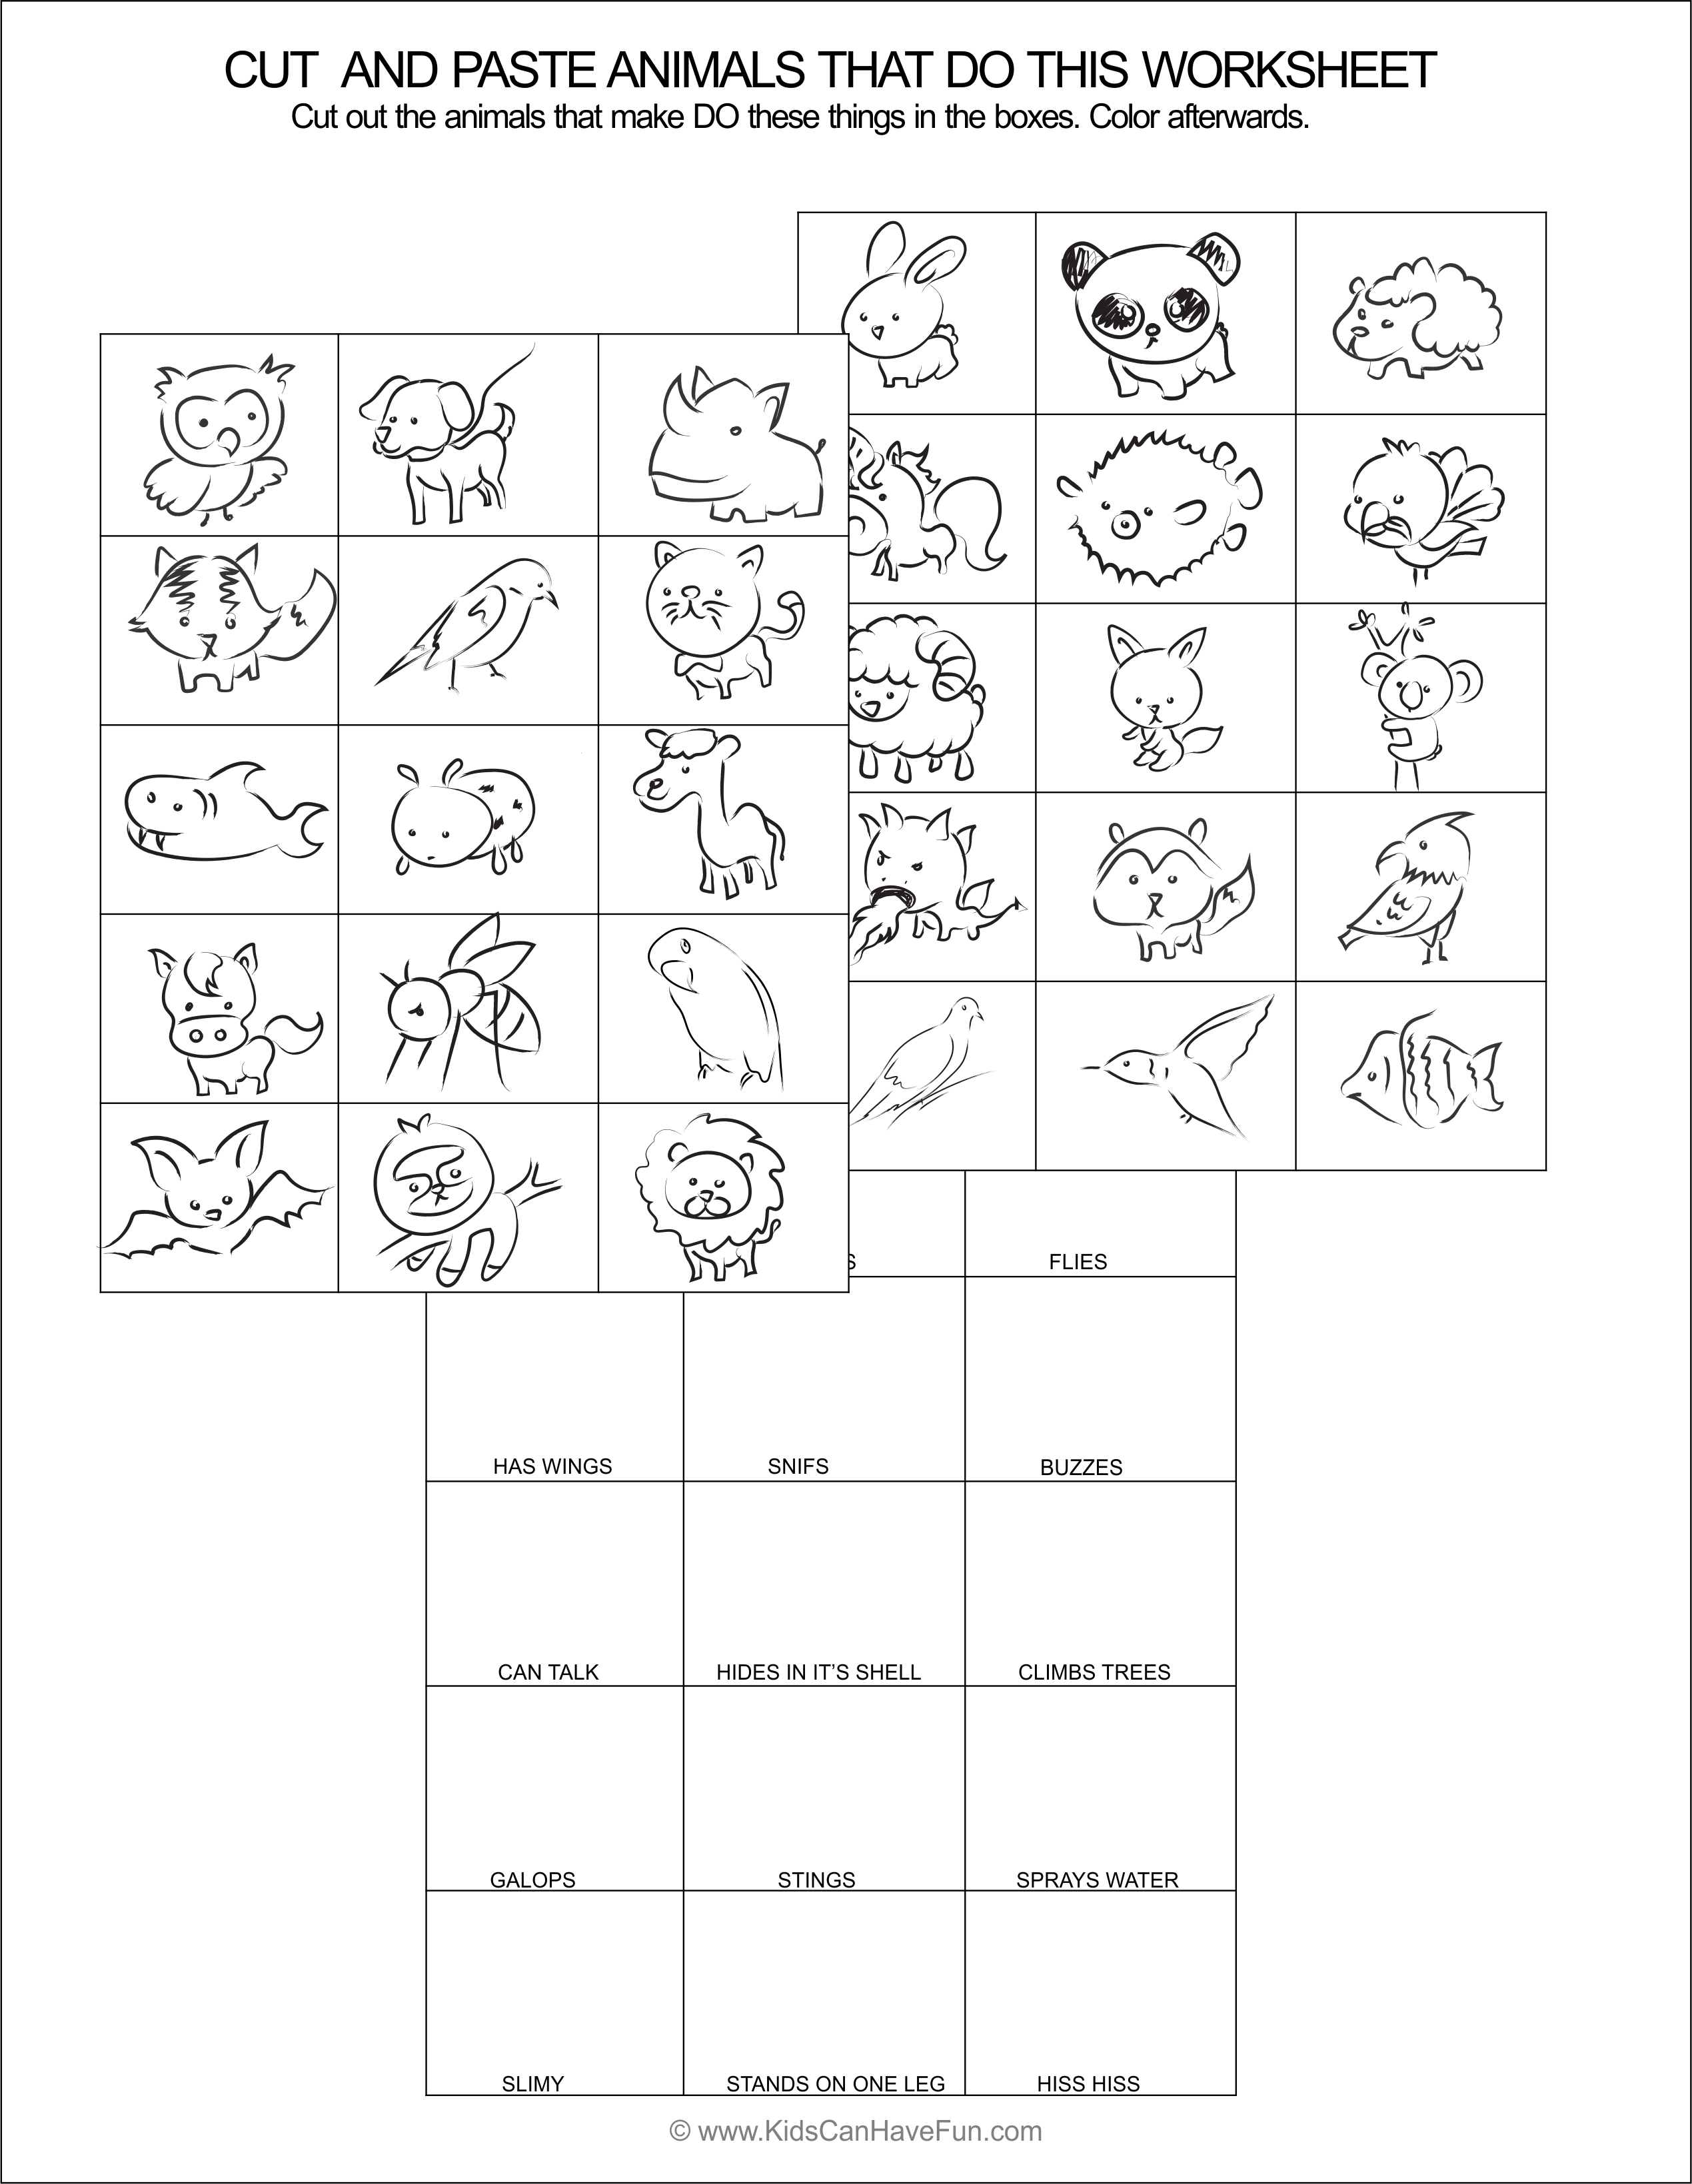 Pin On Cut And Paste Worksheets Activities For Preschool [ 3278 x 2539 Pixel ]